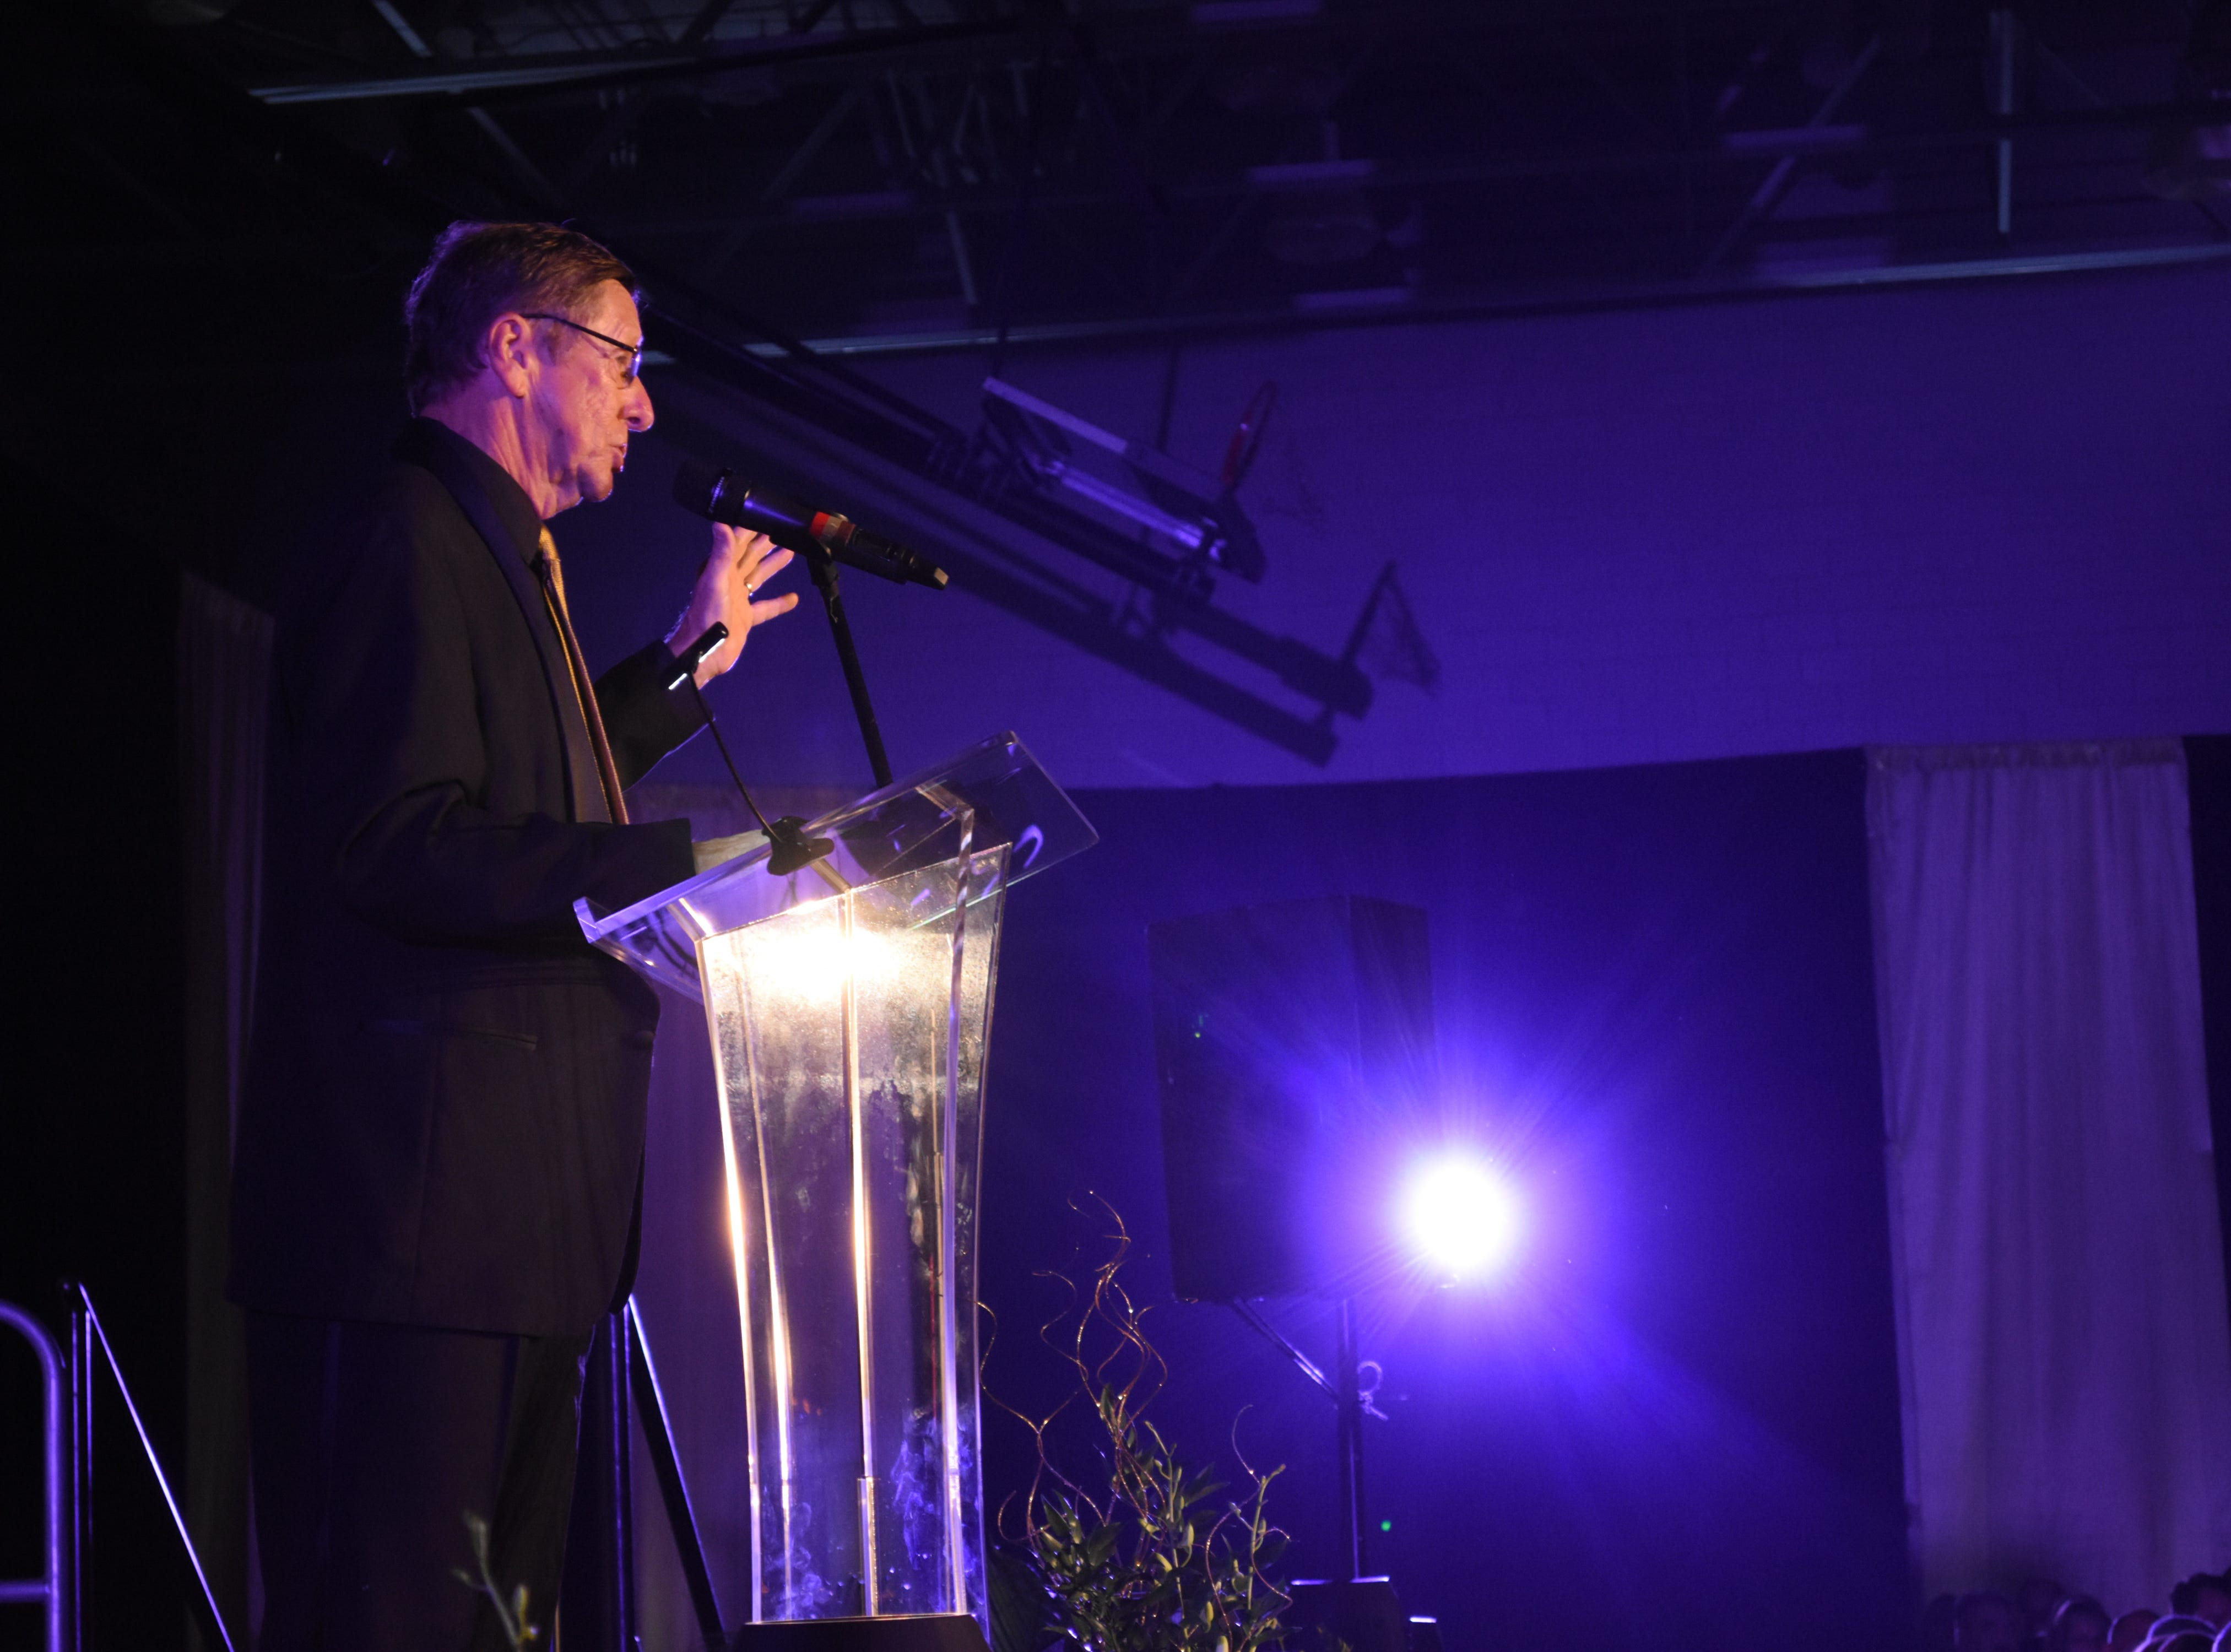 Florida Tech president Dr. T. Dwayne McCay at Florida Tech's 60th Anniversary Homecoming Gala Oct. 13, 2018, at the Clemente Center.